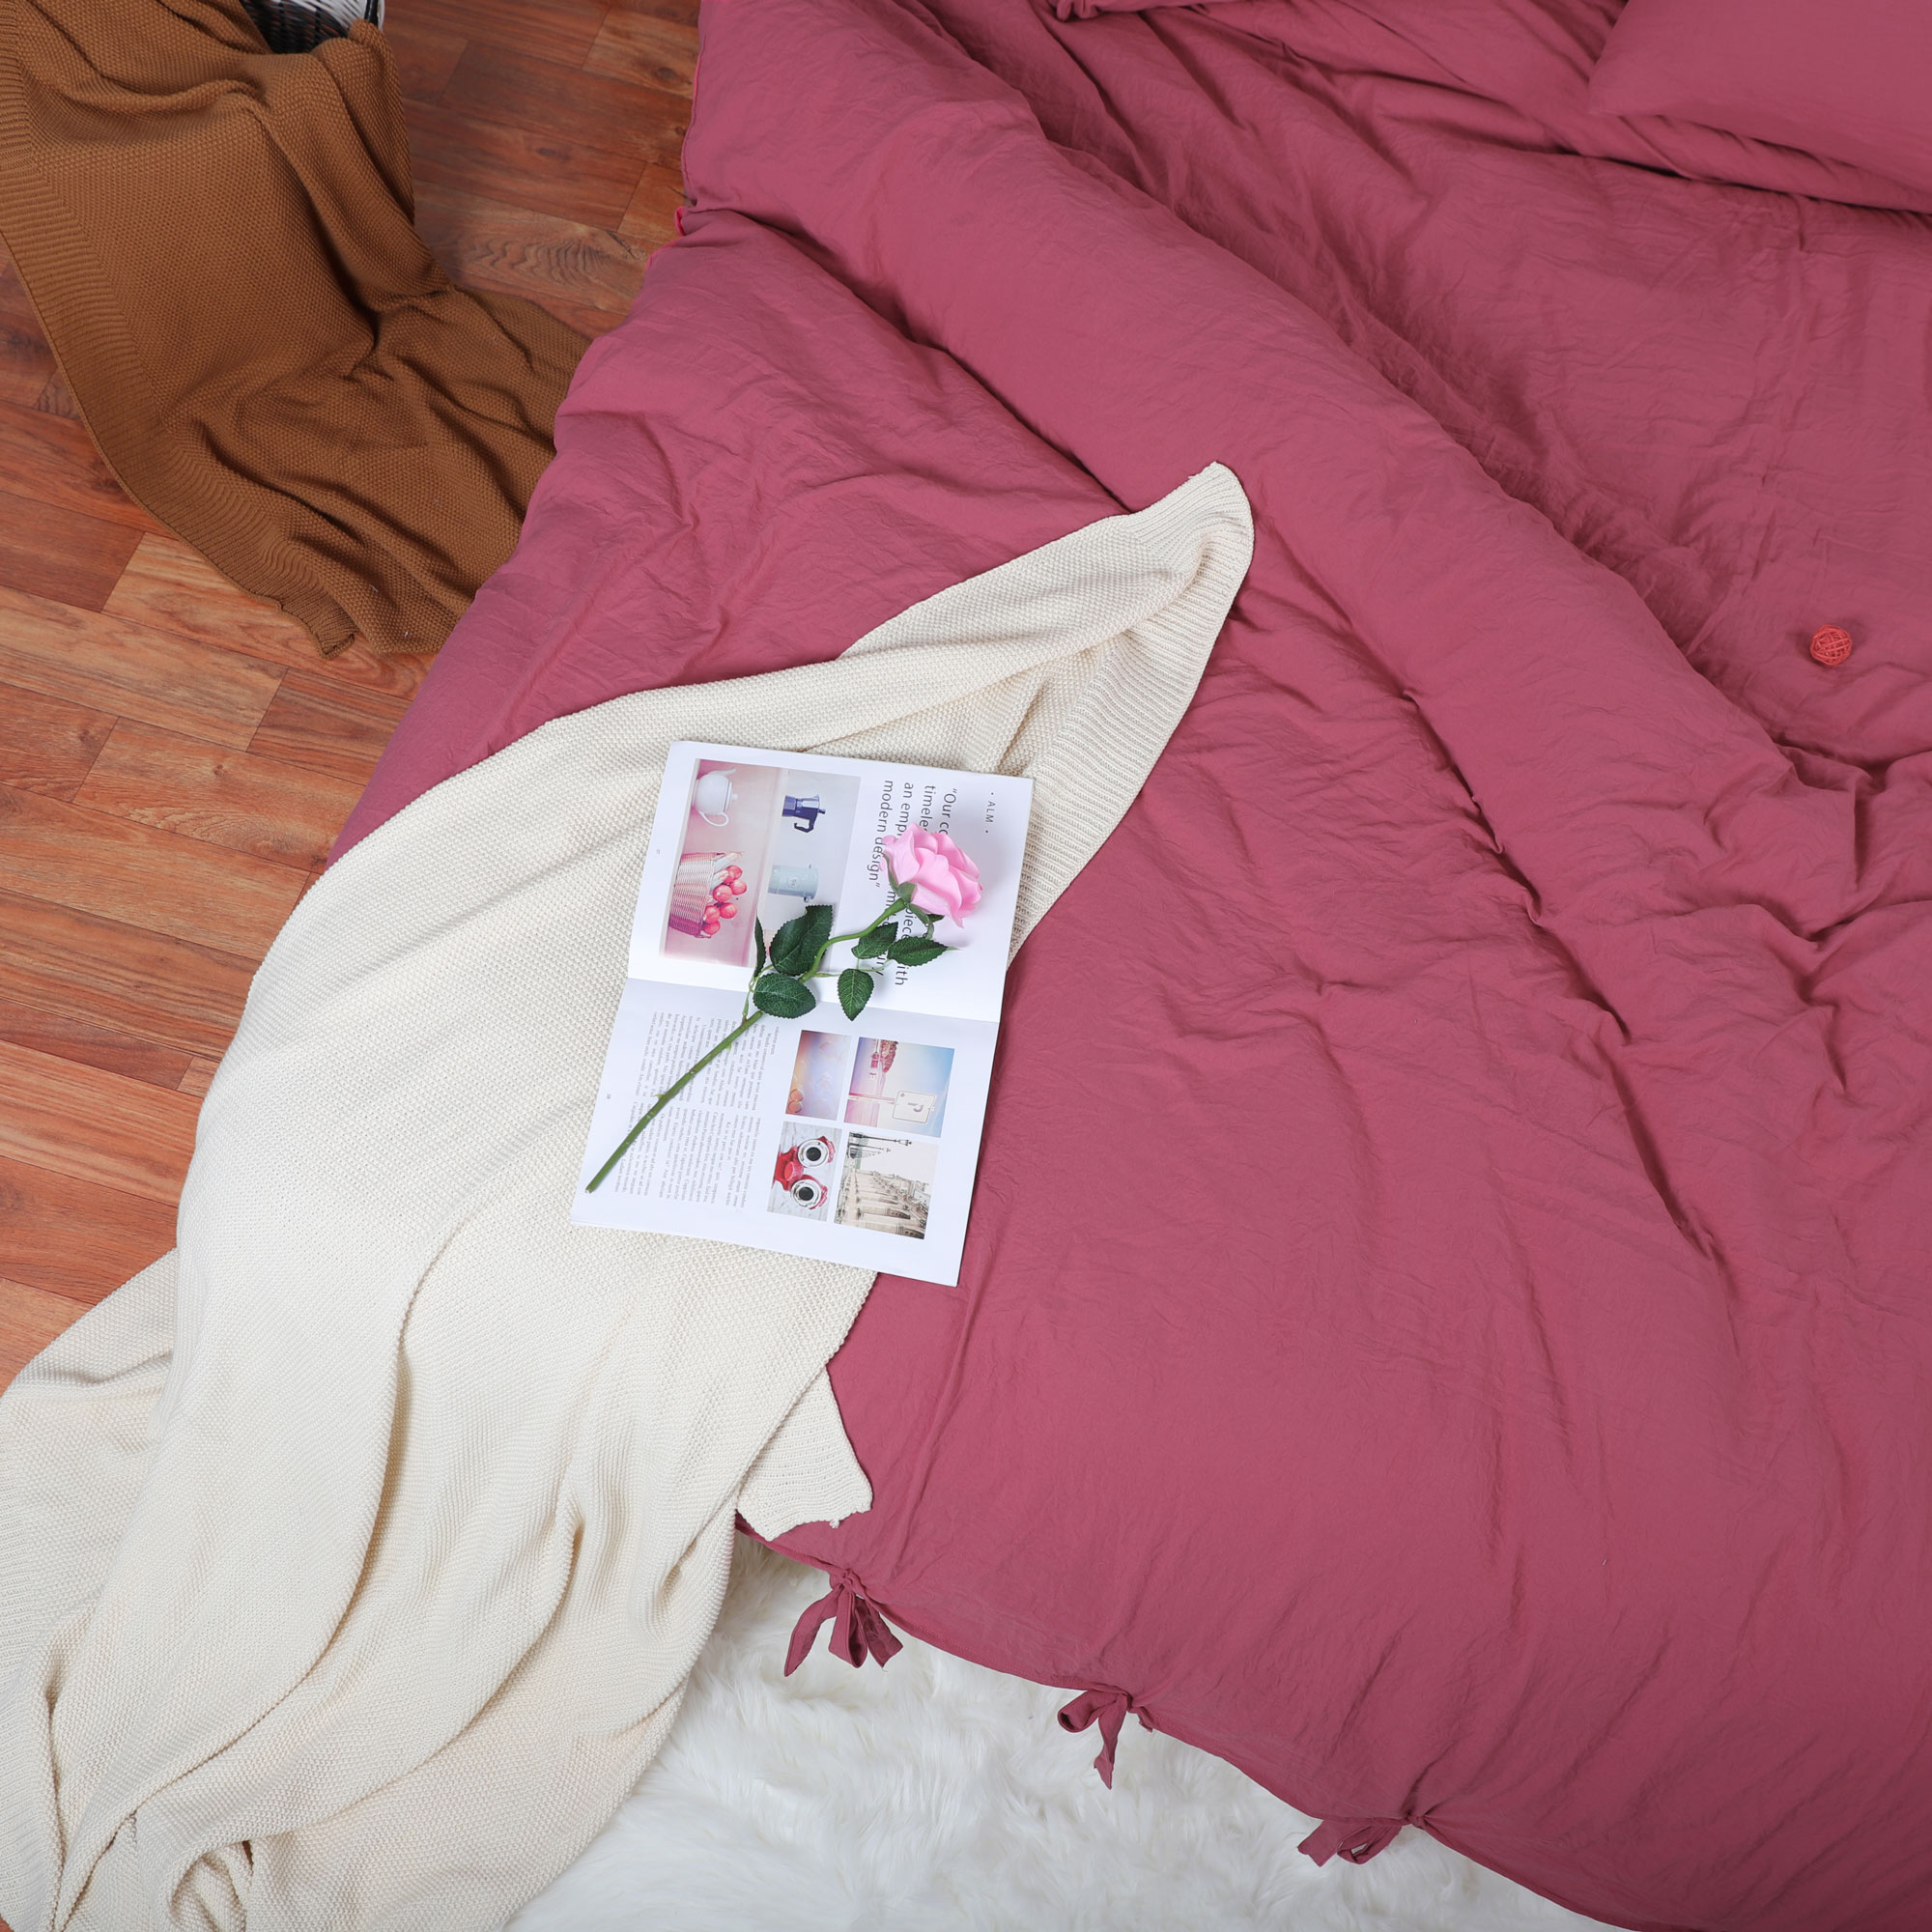 Duvet Cover And Shams Egyptian Comfort 1800 Count Bedding Set Red Queen - image 3 of 8